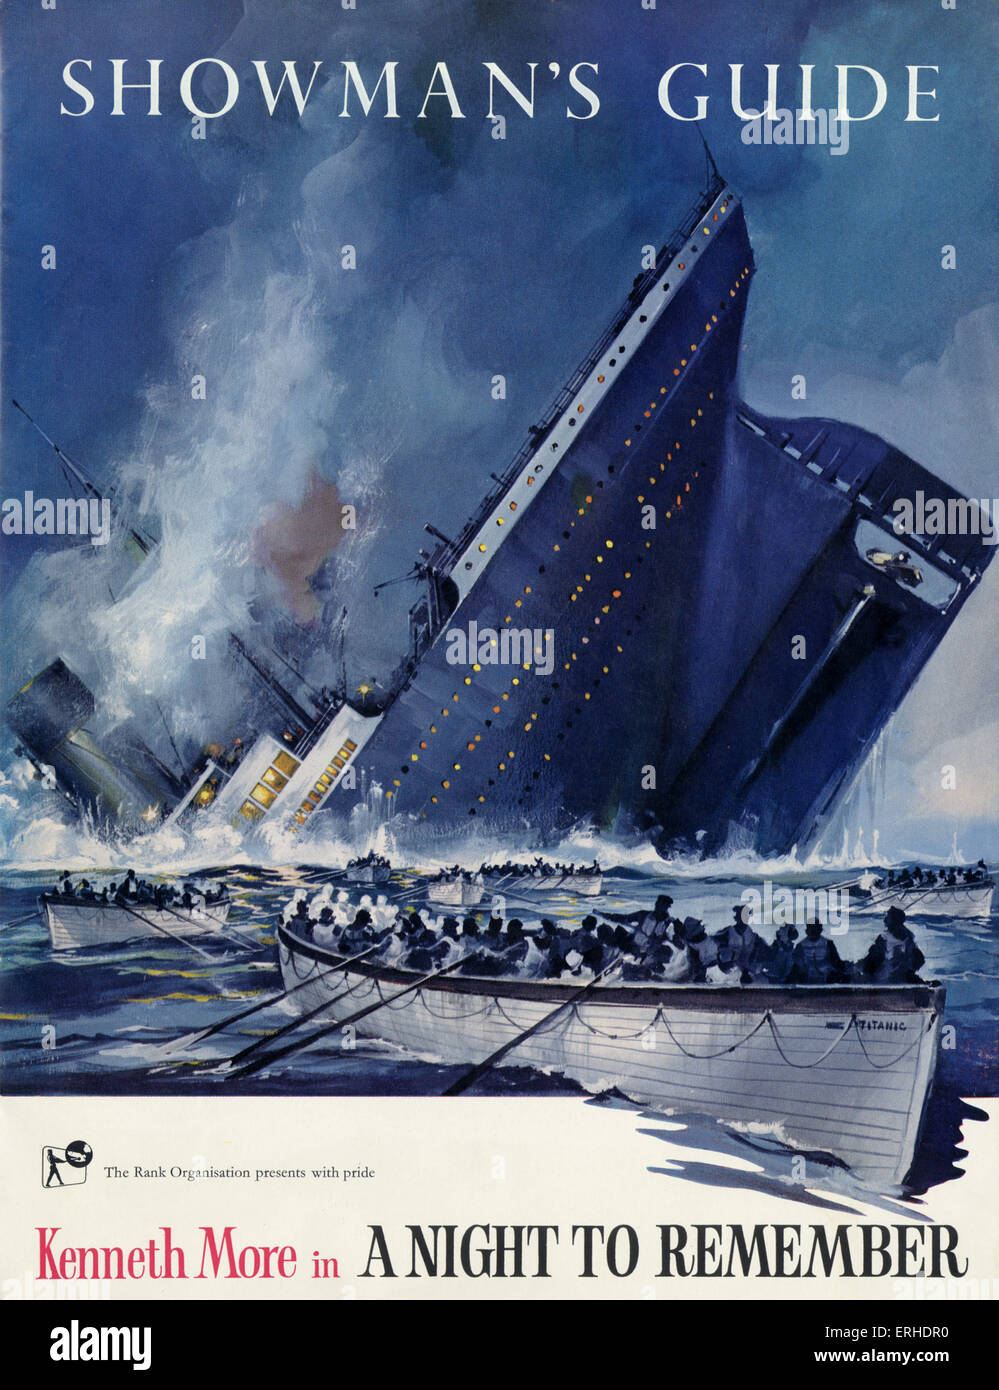 Titanic sinking on the cover of Showman's Guide for the Rank Organisation film ' A night to remember ' - Stock Image